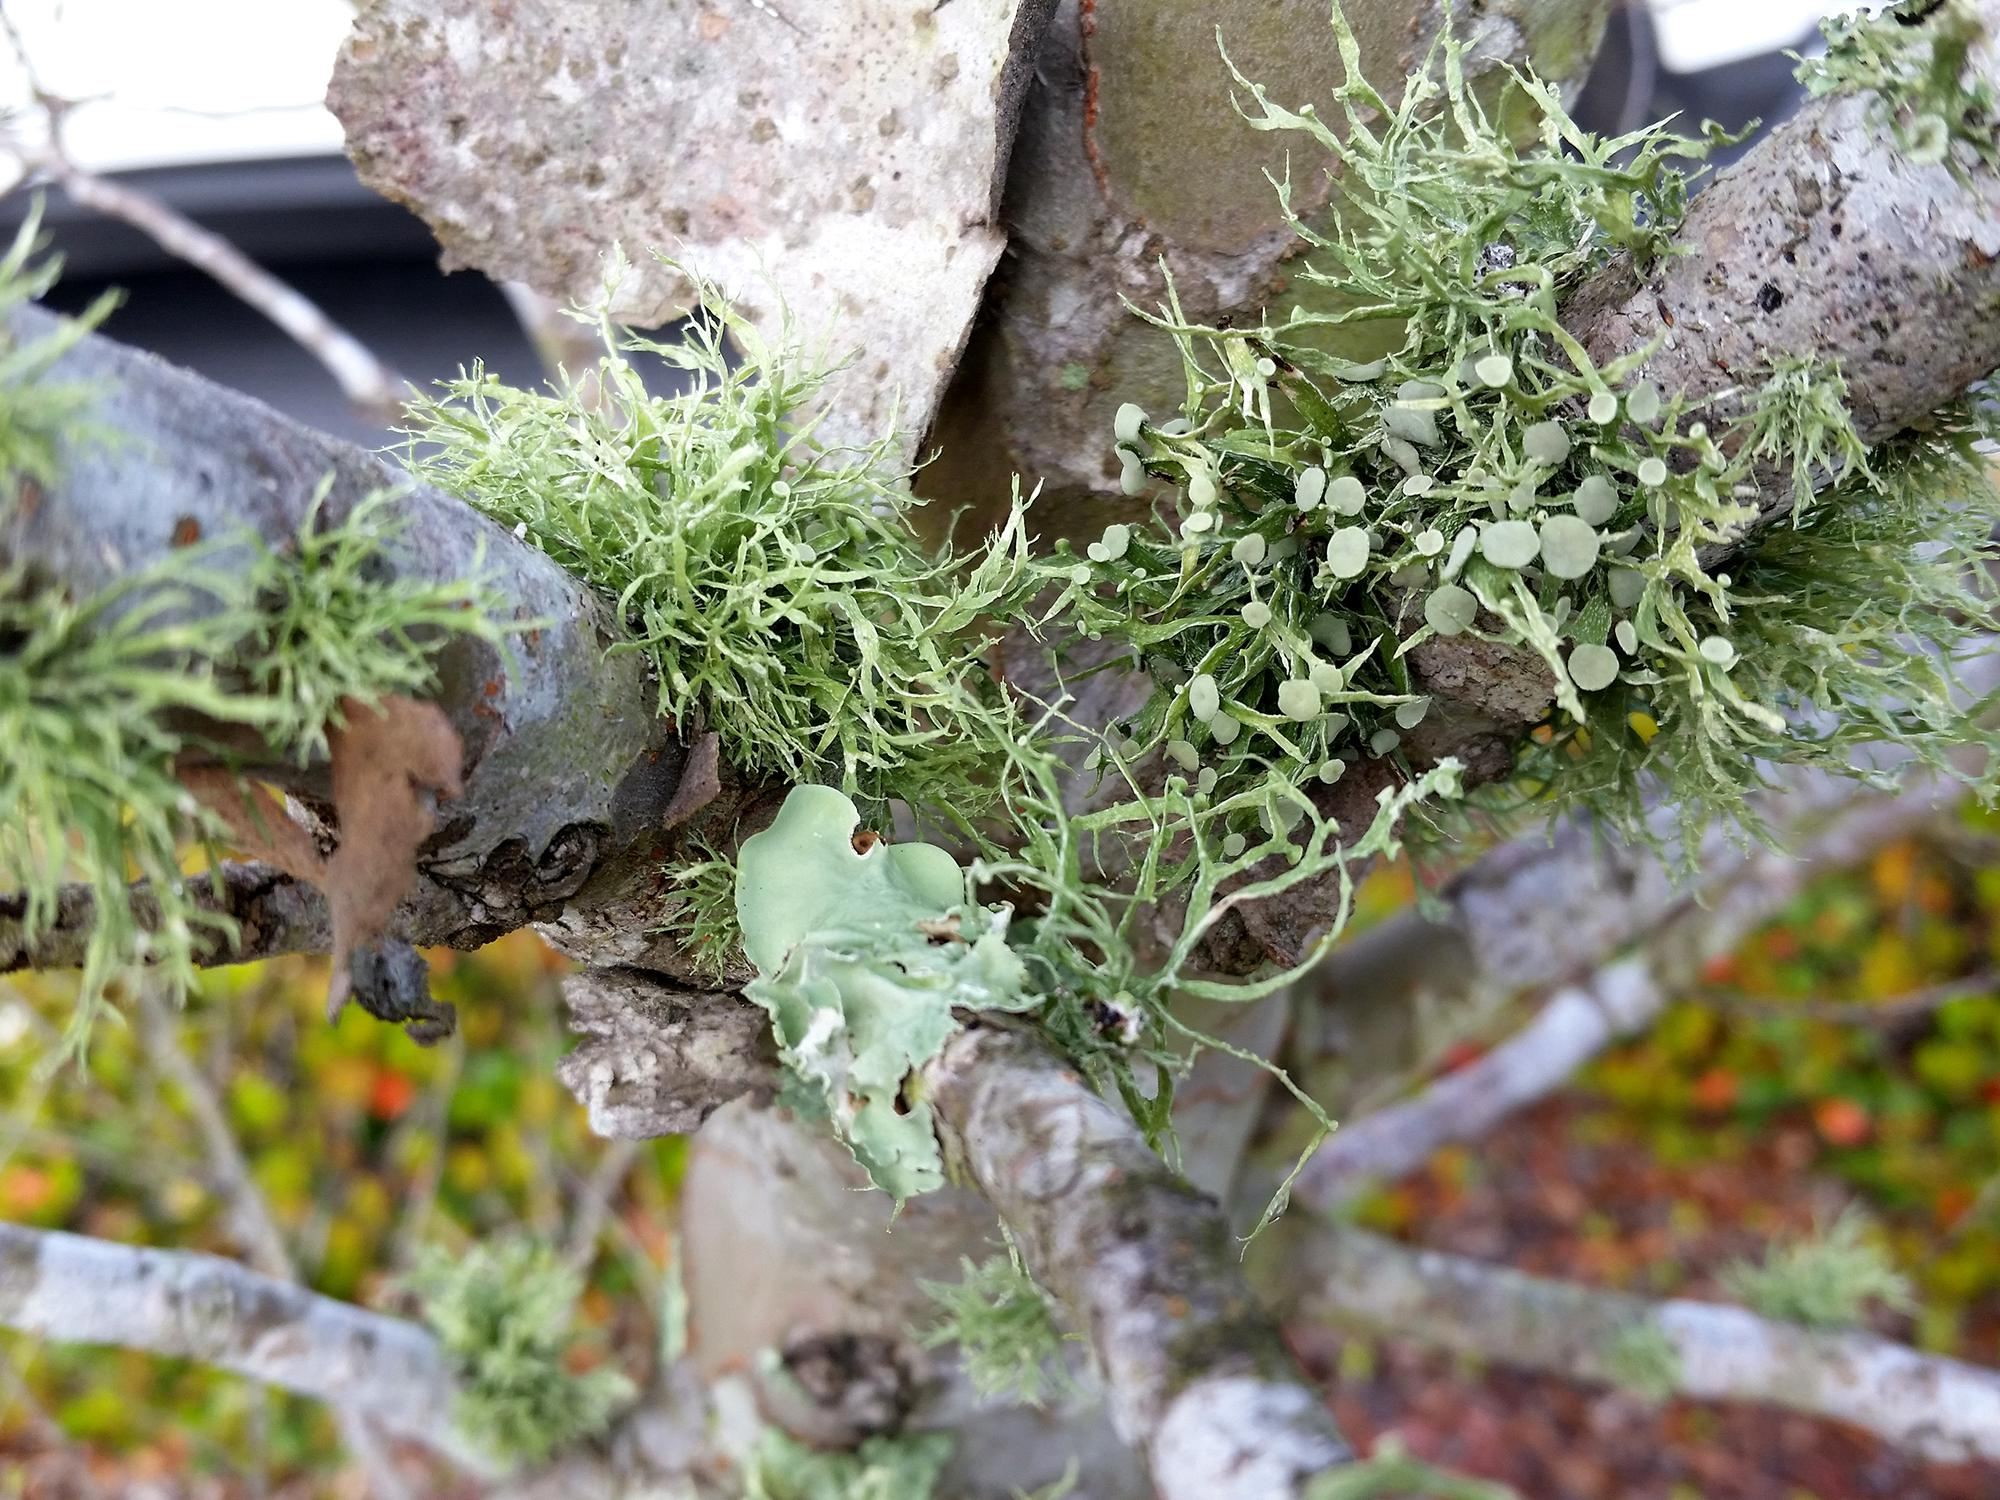 A small tree with leafy green growth on the bark